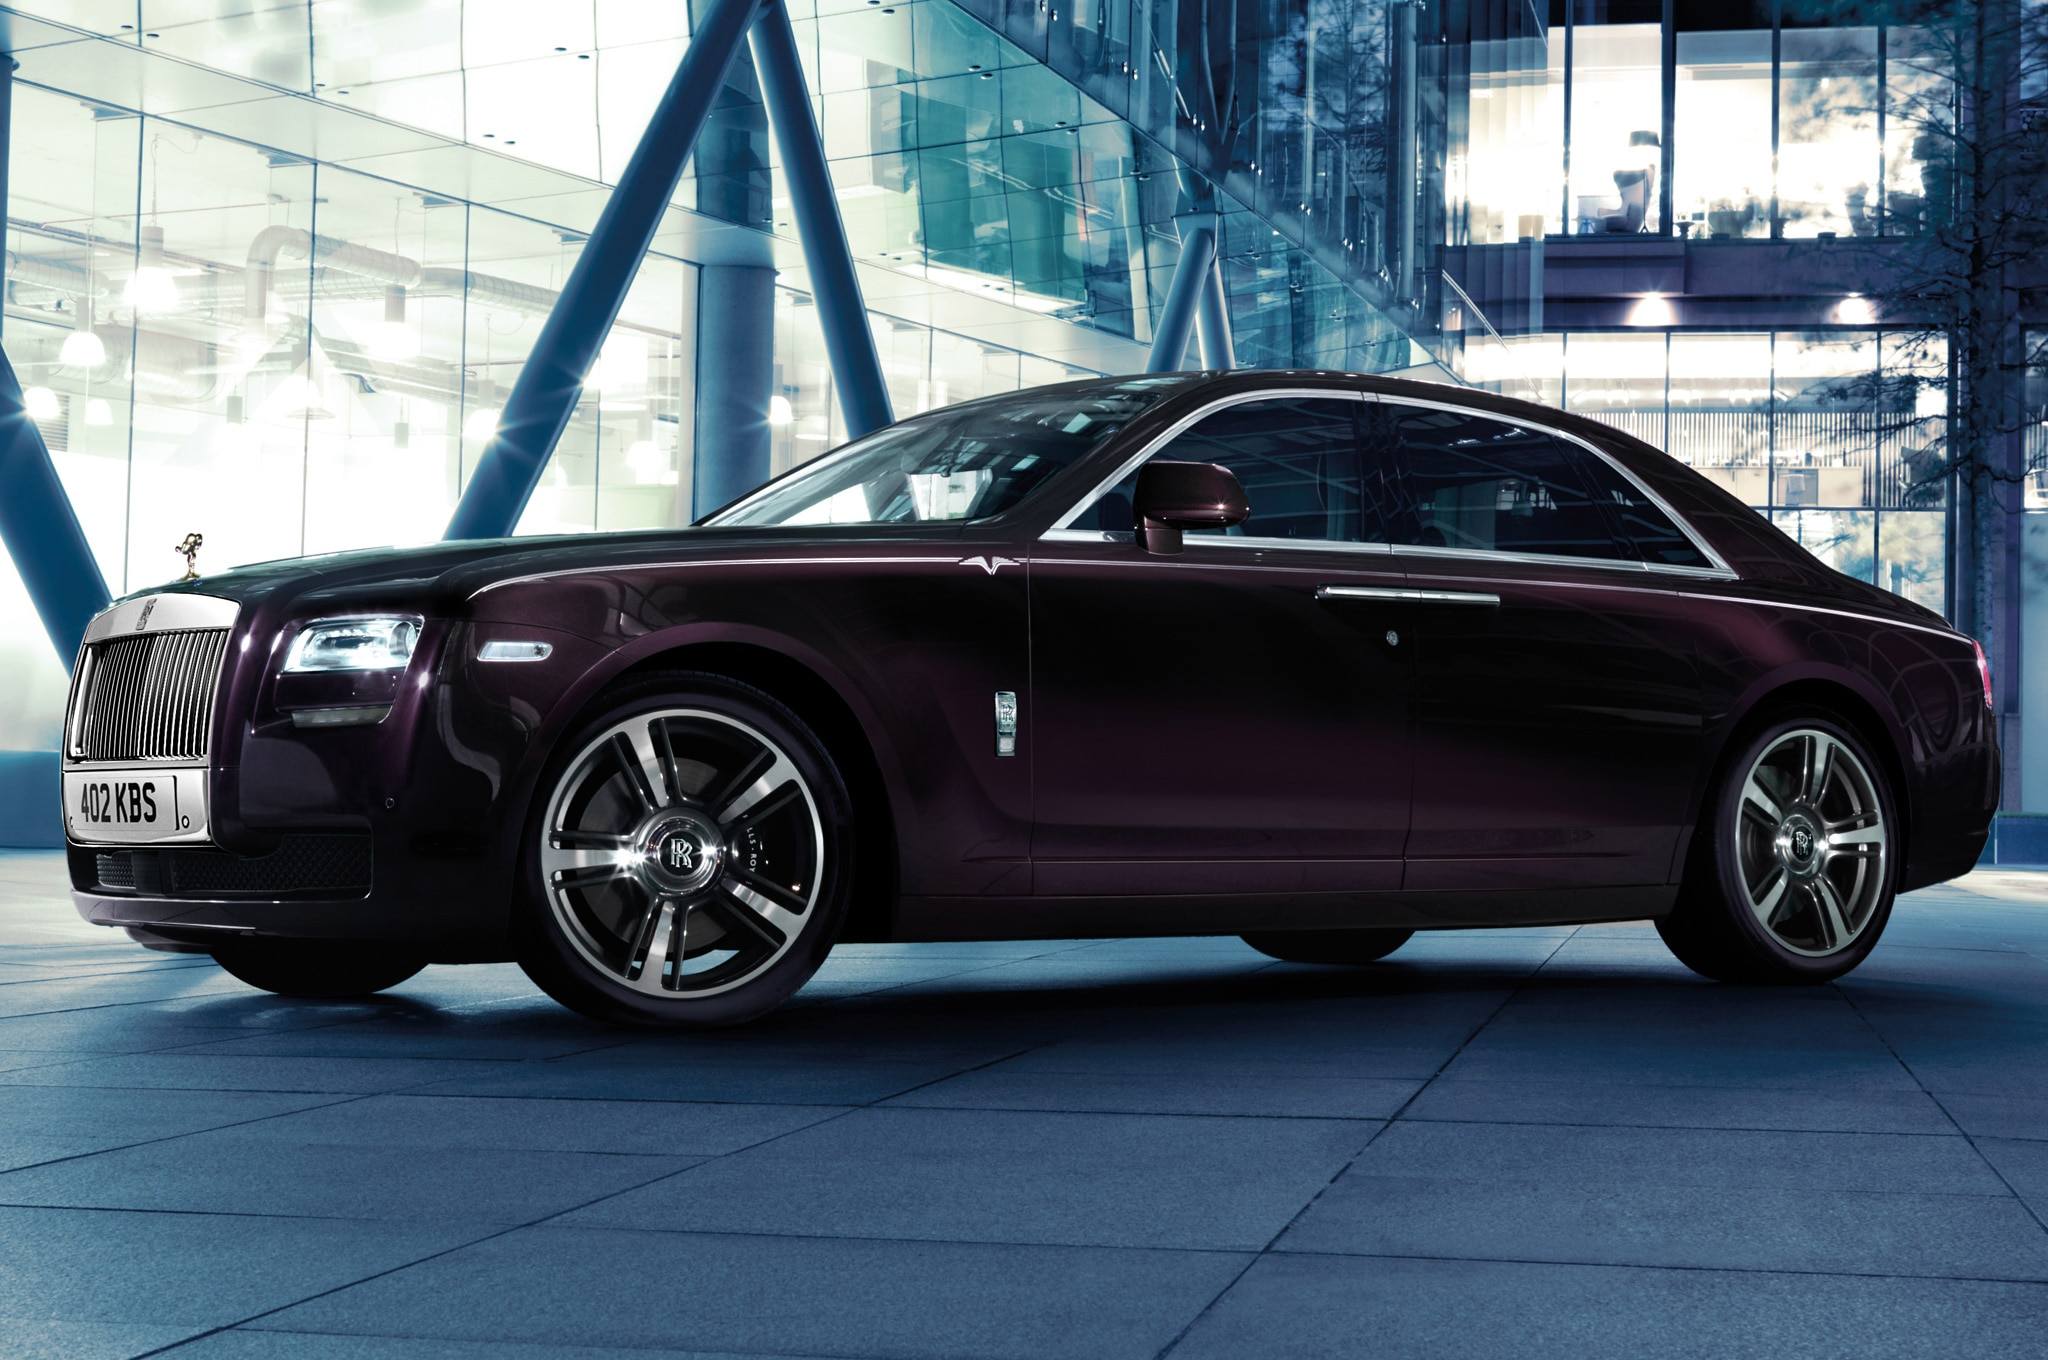 2014 Rolls Royce Ghost V Specification Side View1